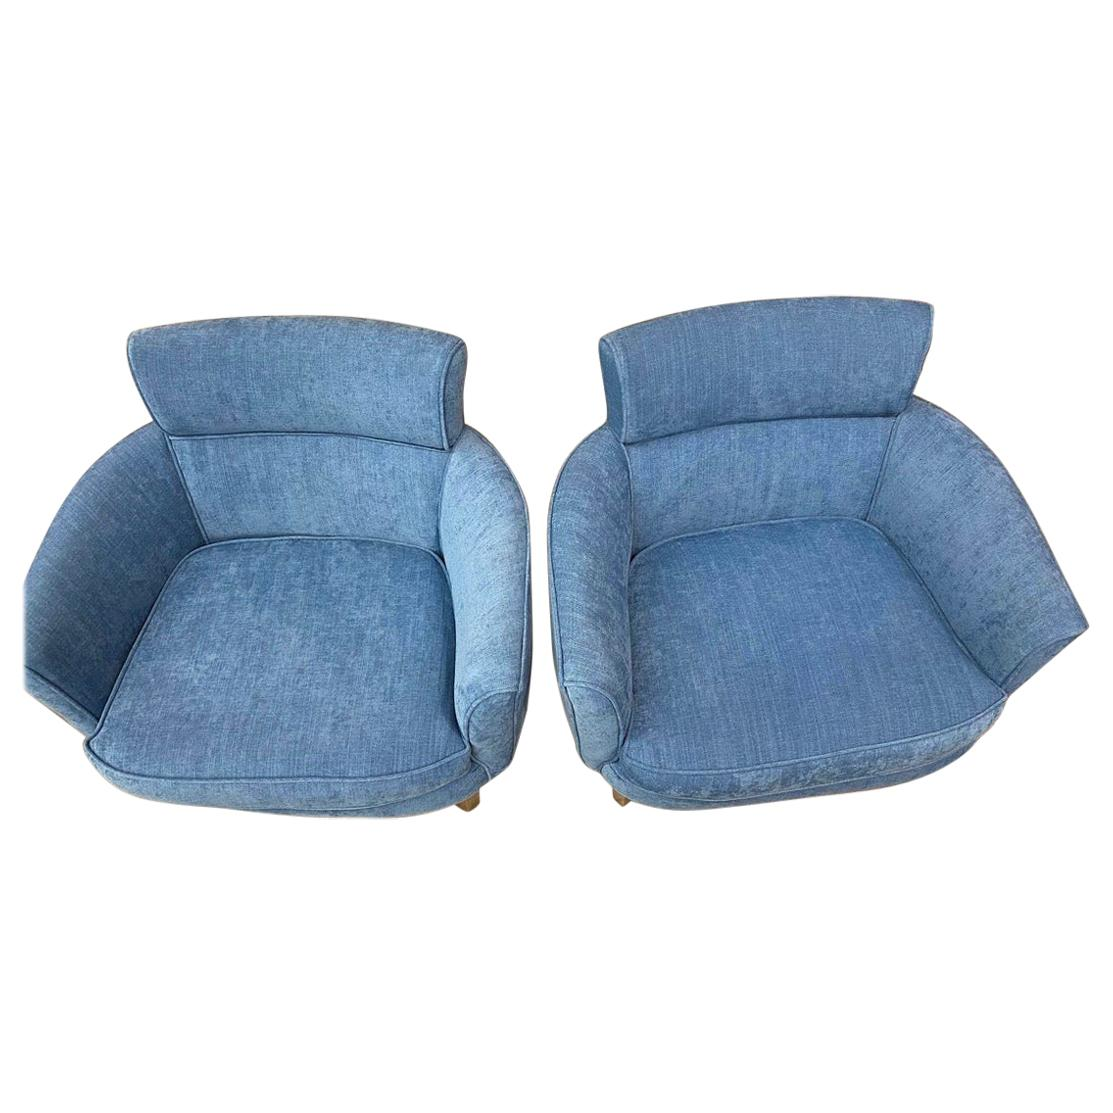 Mid-Century Modern Newly Upholstered Blue Cotton Denim Lounge Chairs